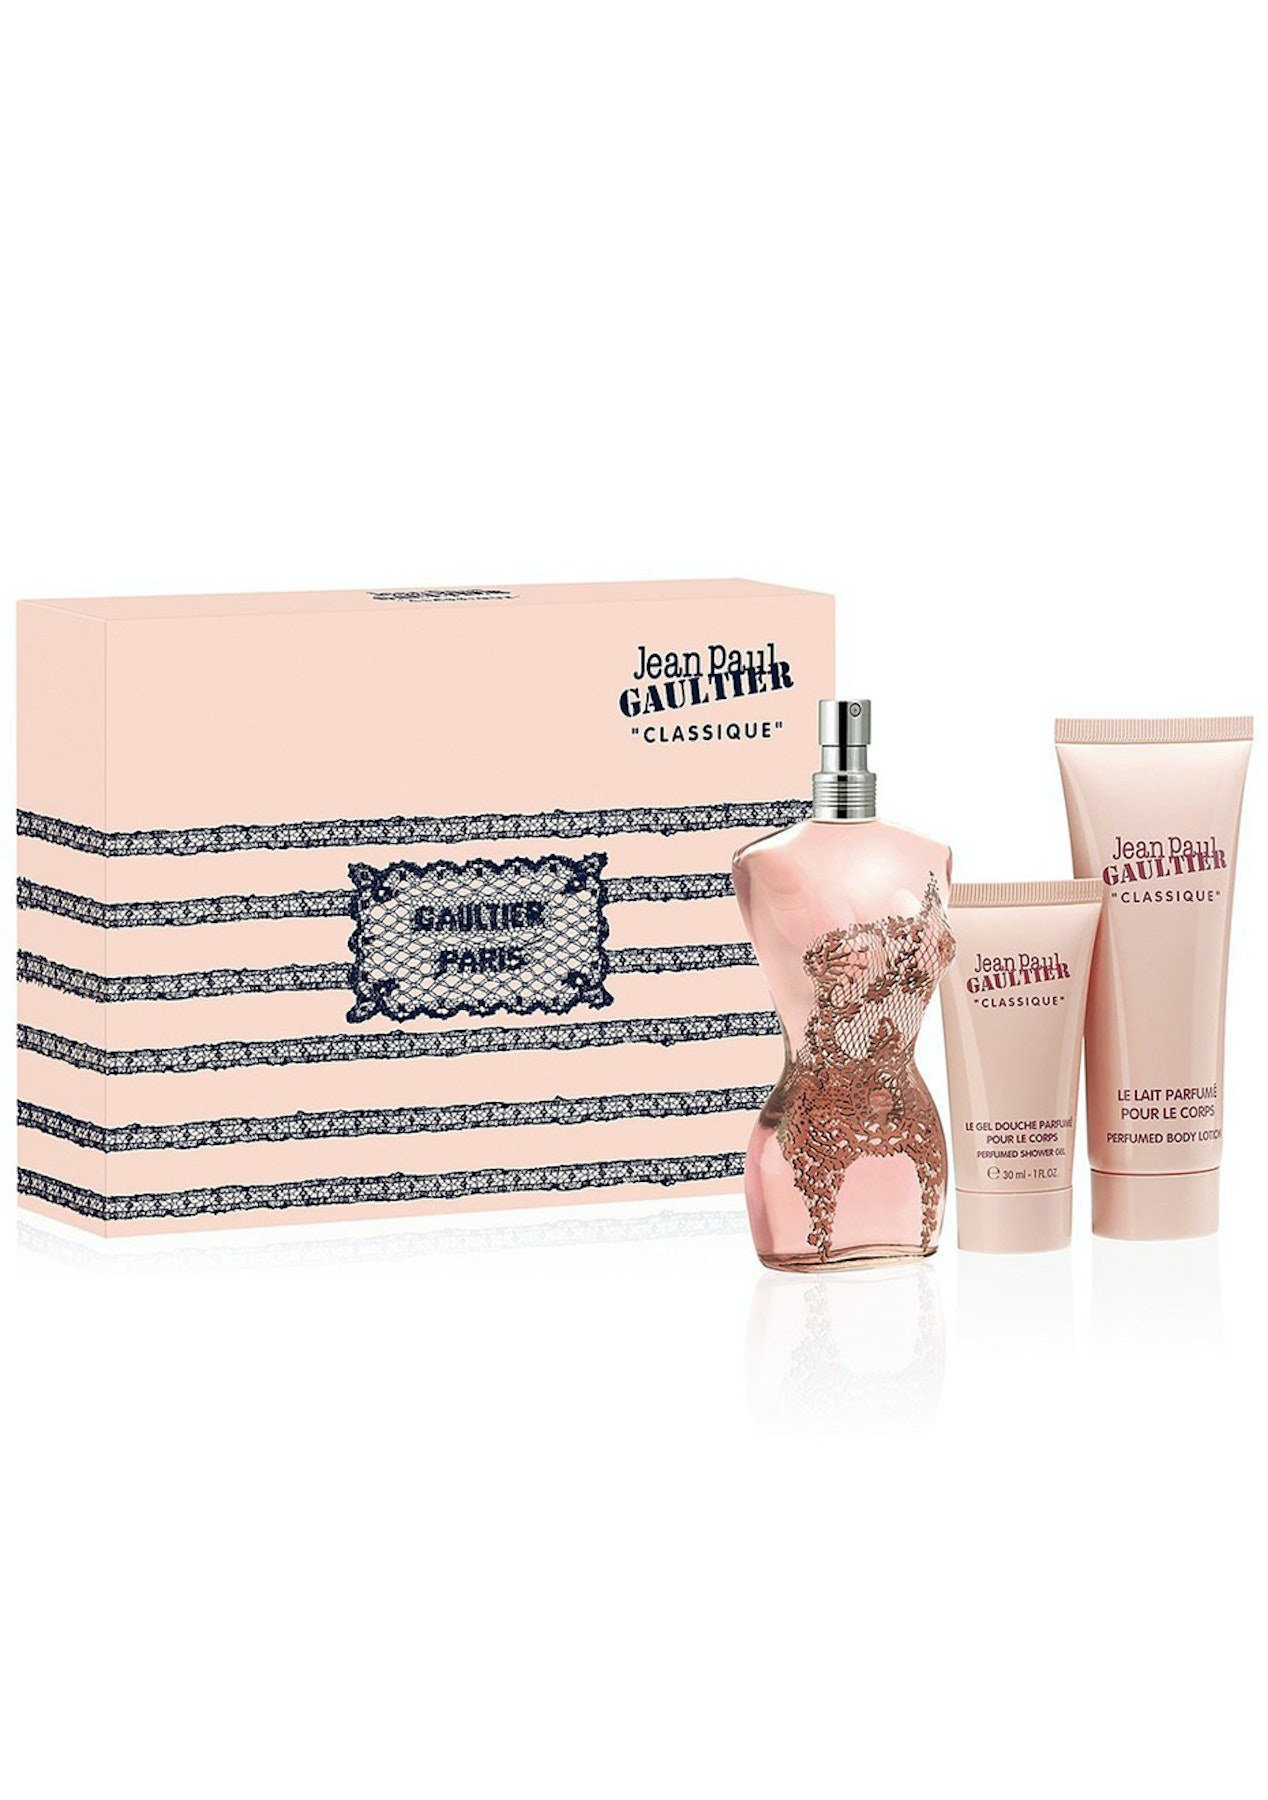 d16f0c79029a2 Jean Paul Gaultier 3pc Classique Giftset - Fragrance Frenzy - Onceit